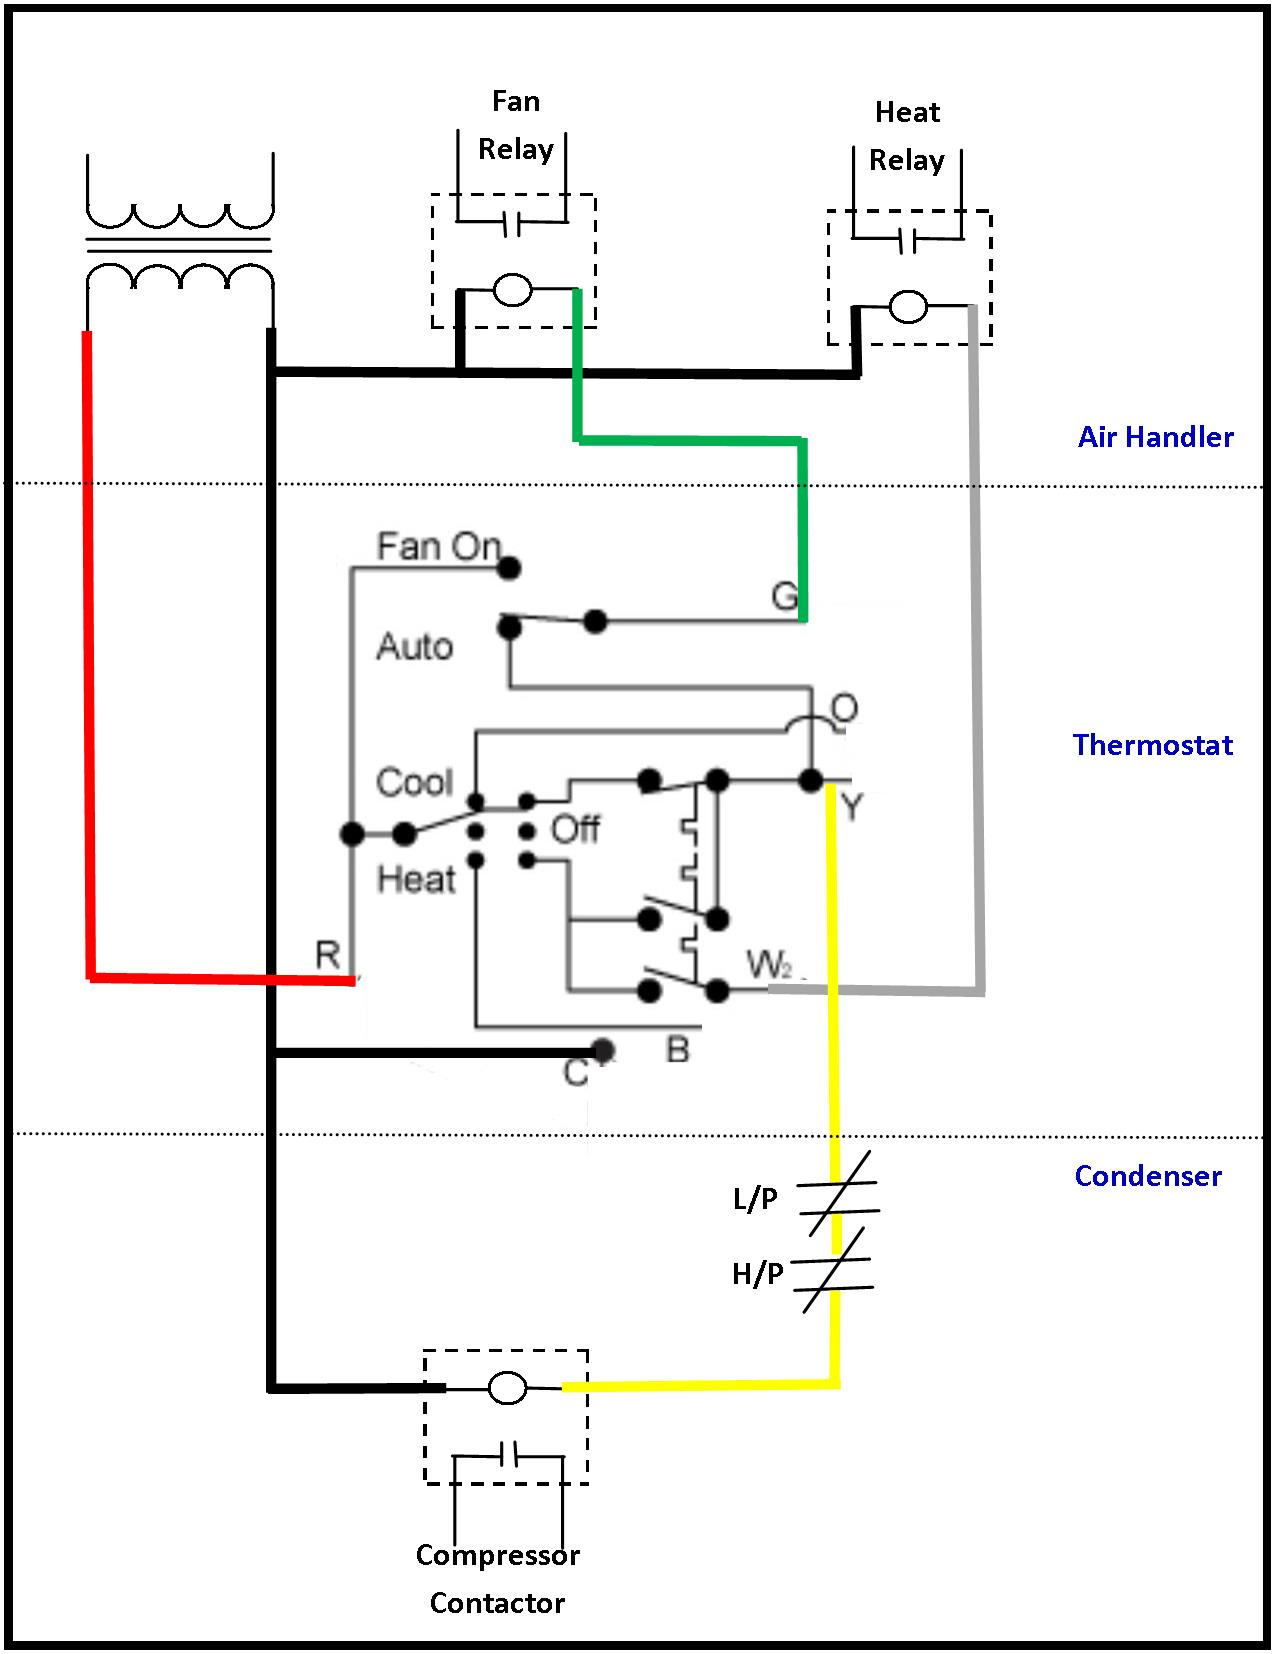 AC low voltage wiring diagram1 hvac wire diagram hvac disconnect wire diagram \u2022 wiring diagrams contactor wiring diagram ac unit at edmiracle.co